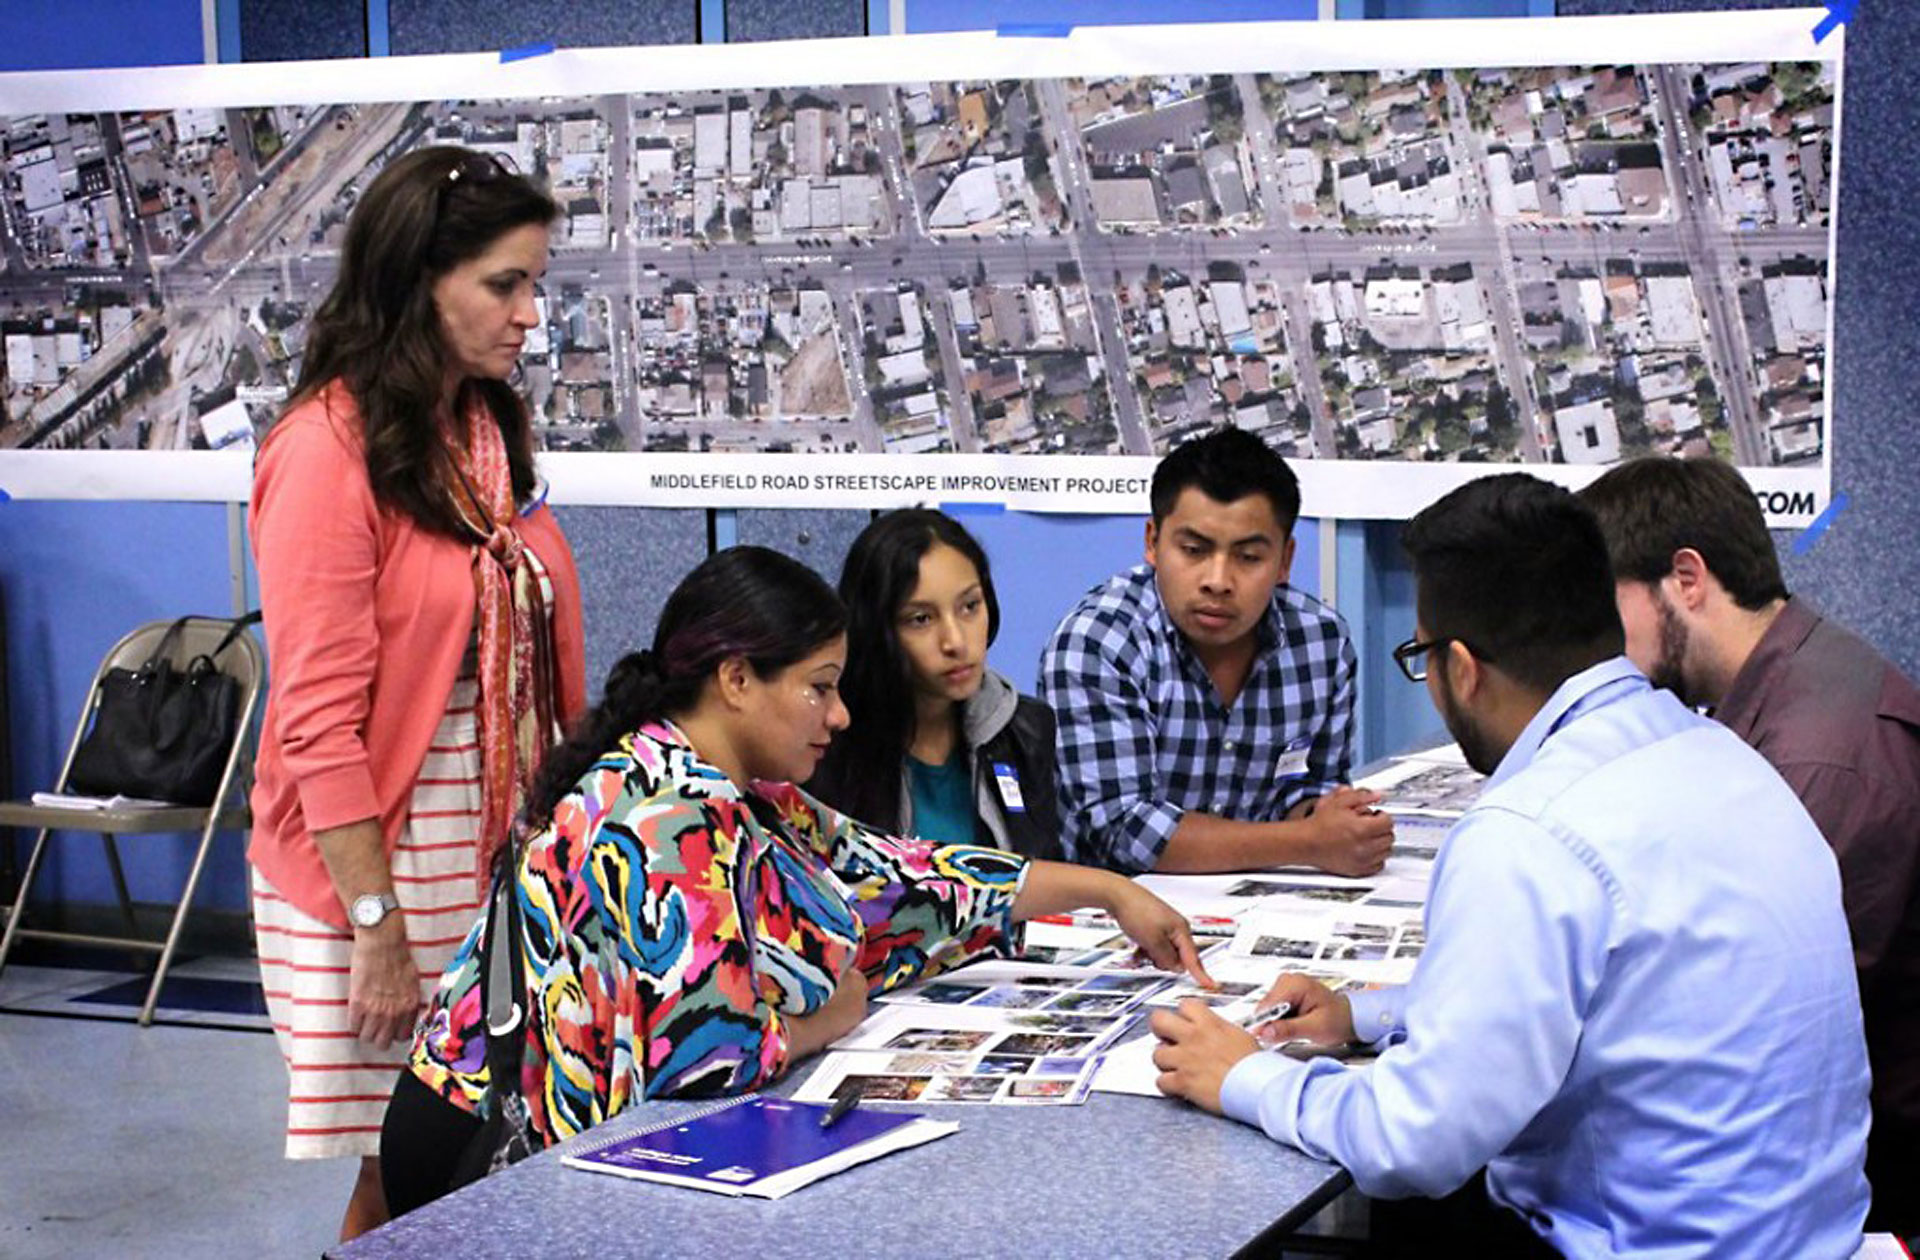 Community members and consultant Millette Litzinger (L) discuss plans for a redesigned Middlefield Road at a design workshop in North Fair Oaks on Sept. 30, 2015.